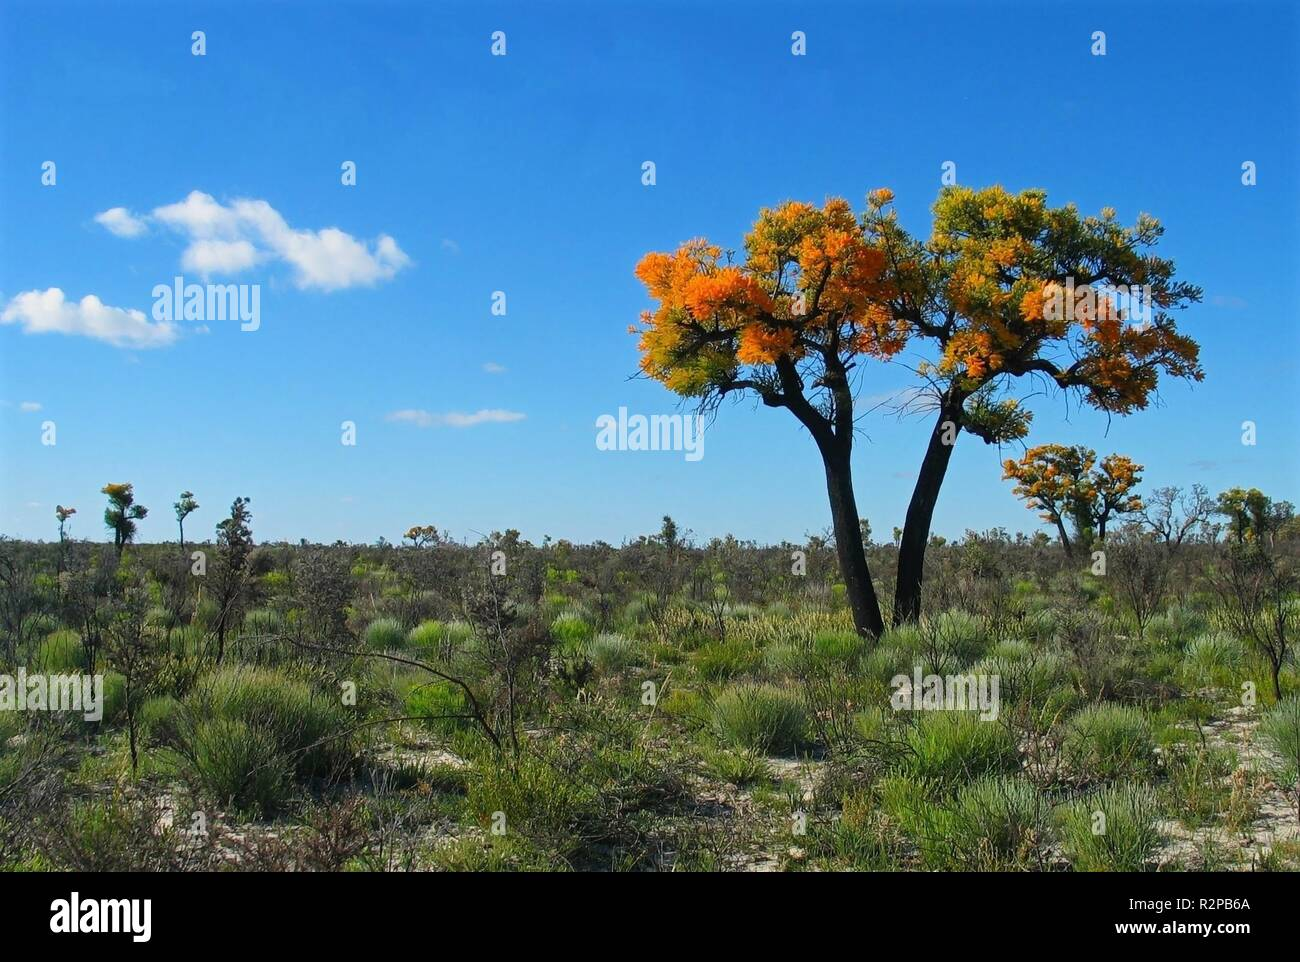 shining tree - Stock Image